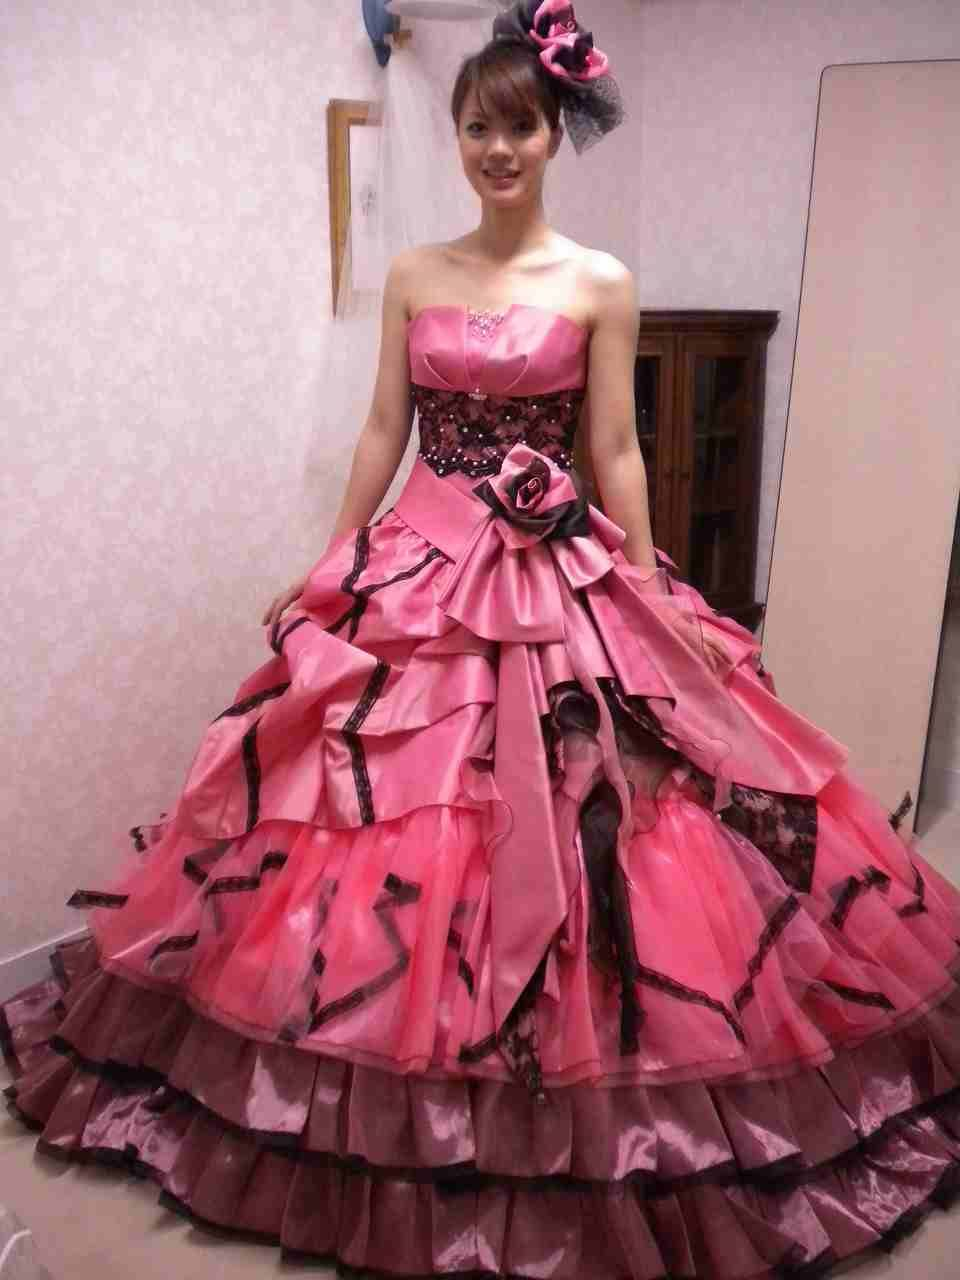 dball ~ dress ballgown | VESTIDOS | Pinterest | Años y Vestiditos